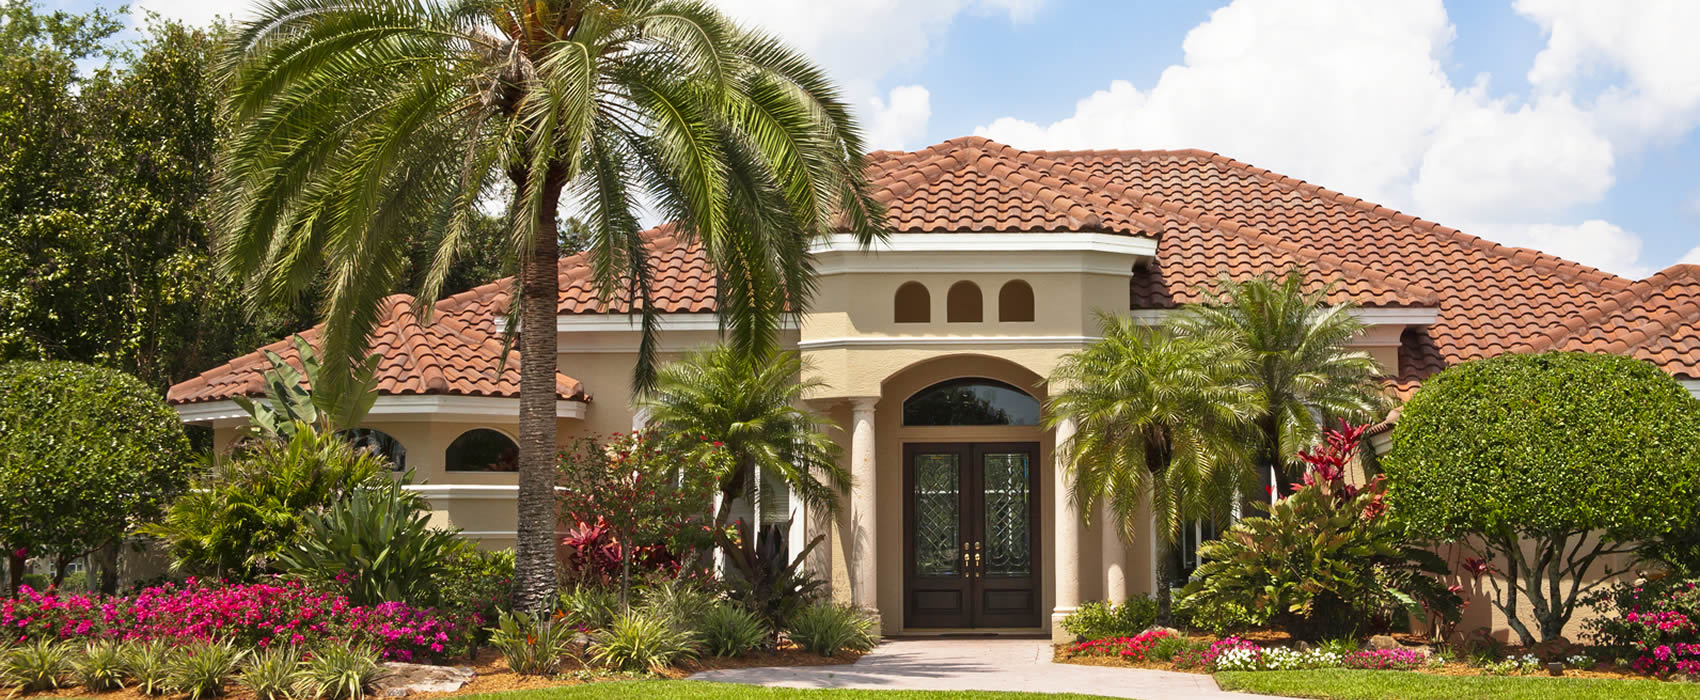 Front elevation of Luxury home & tropical garden